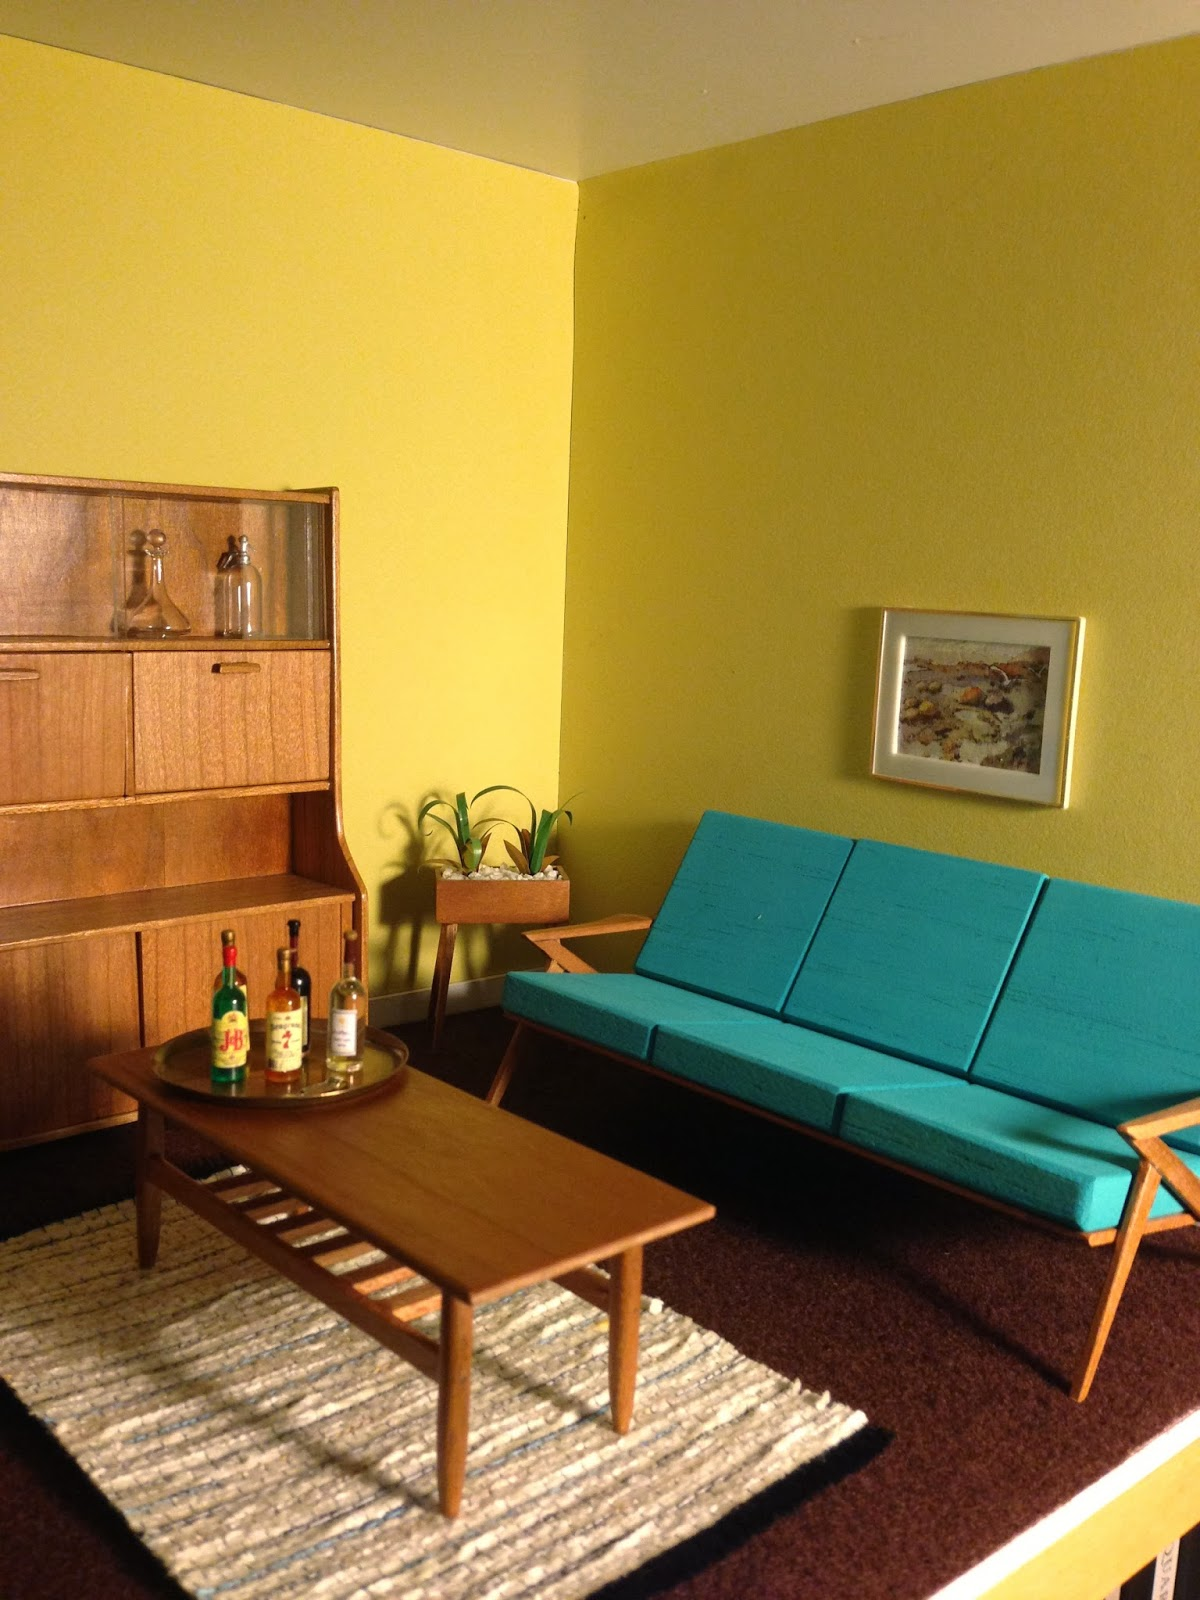 Architecture of Tiny Distinction. Architecture of Tiny Distinction  Mid Century in Miniature and a